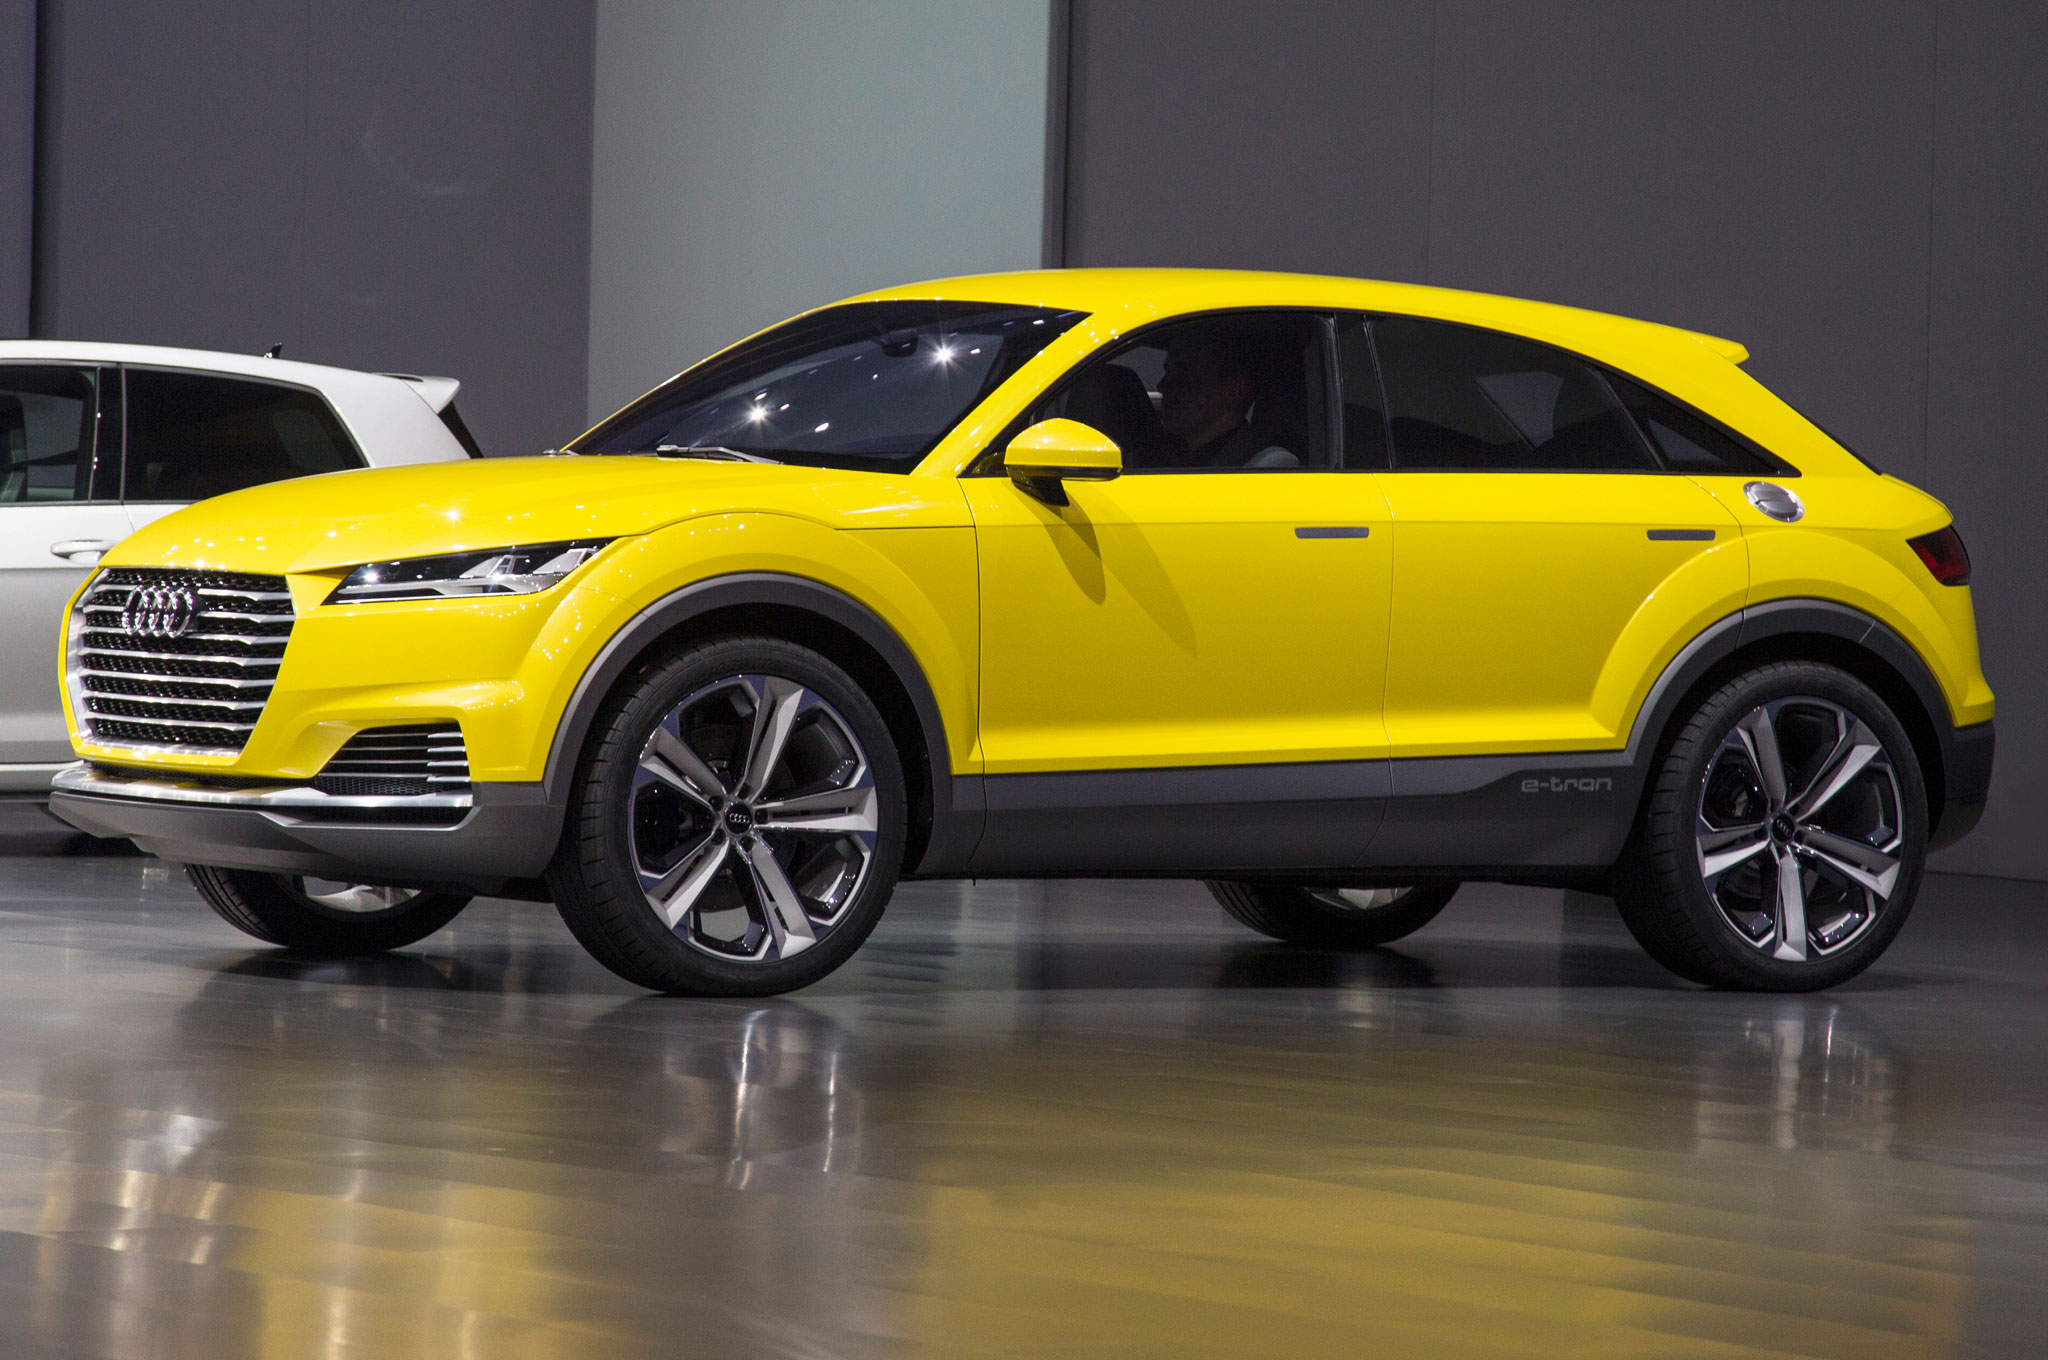 Report: Audi TTQ Will Be Production Version of TT Offroad Concept